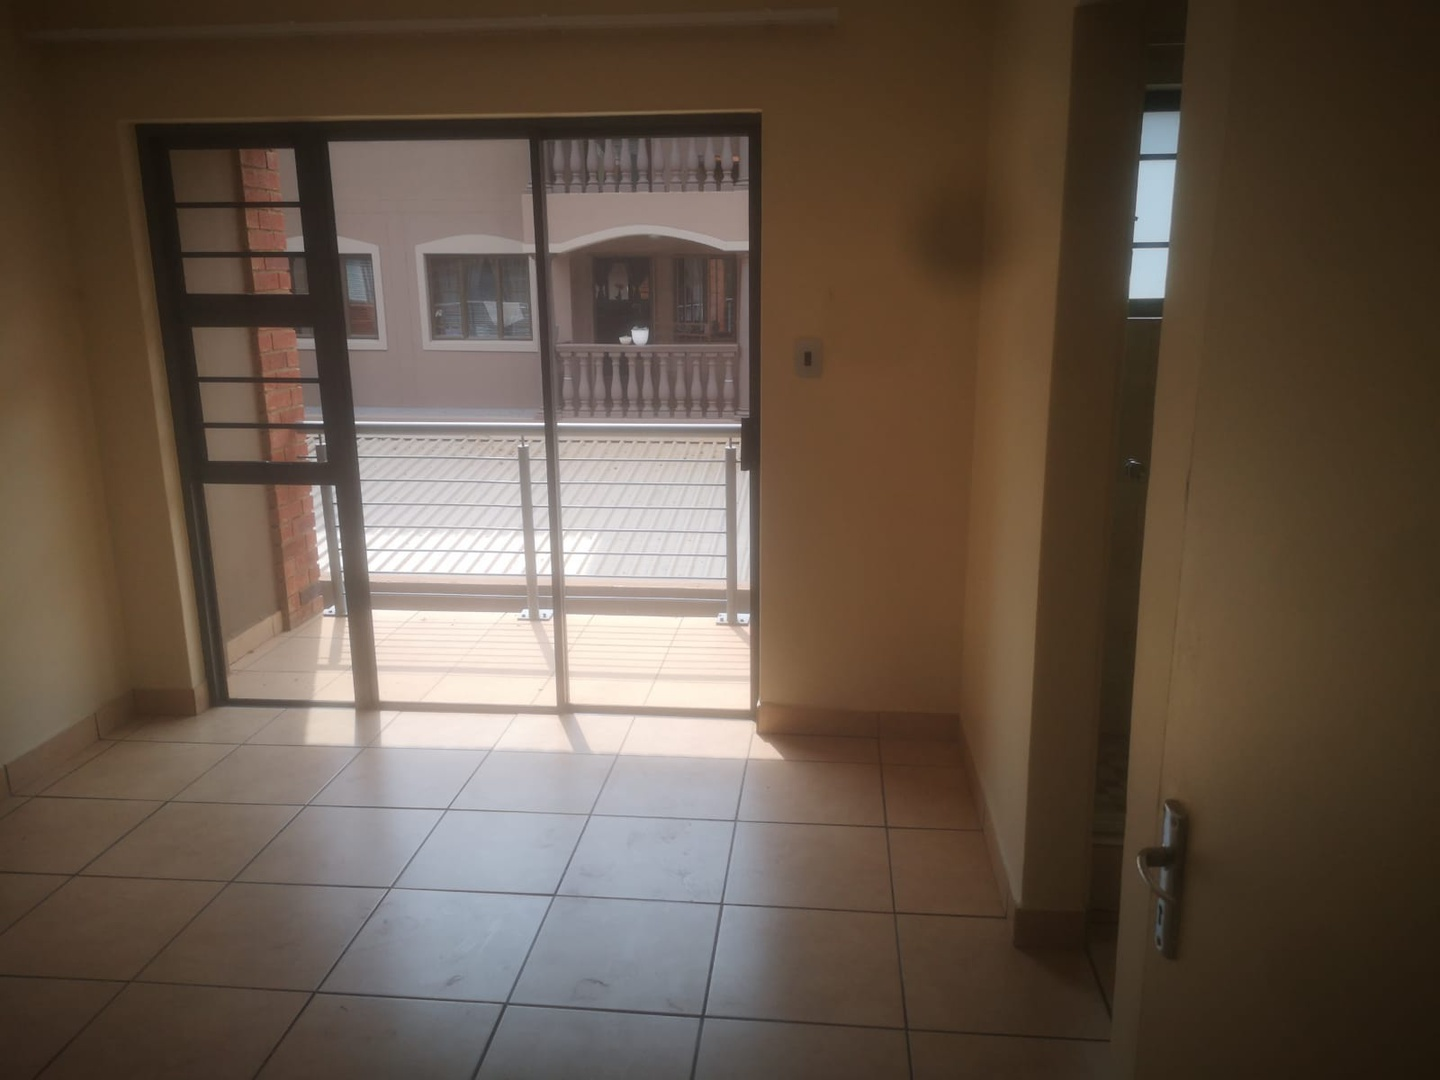 Apartment in Bult - WhatsApp Image 2021-08-25 at 14.05.30.jpeg